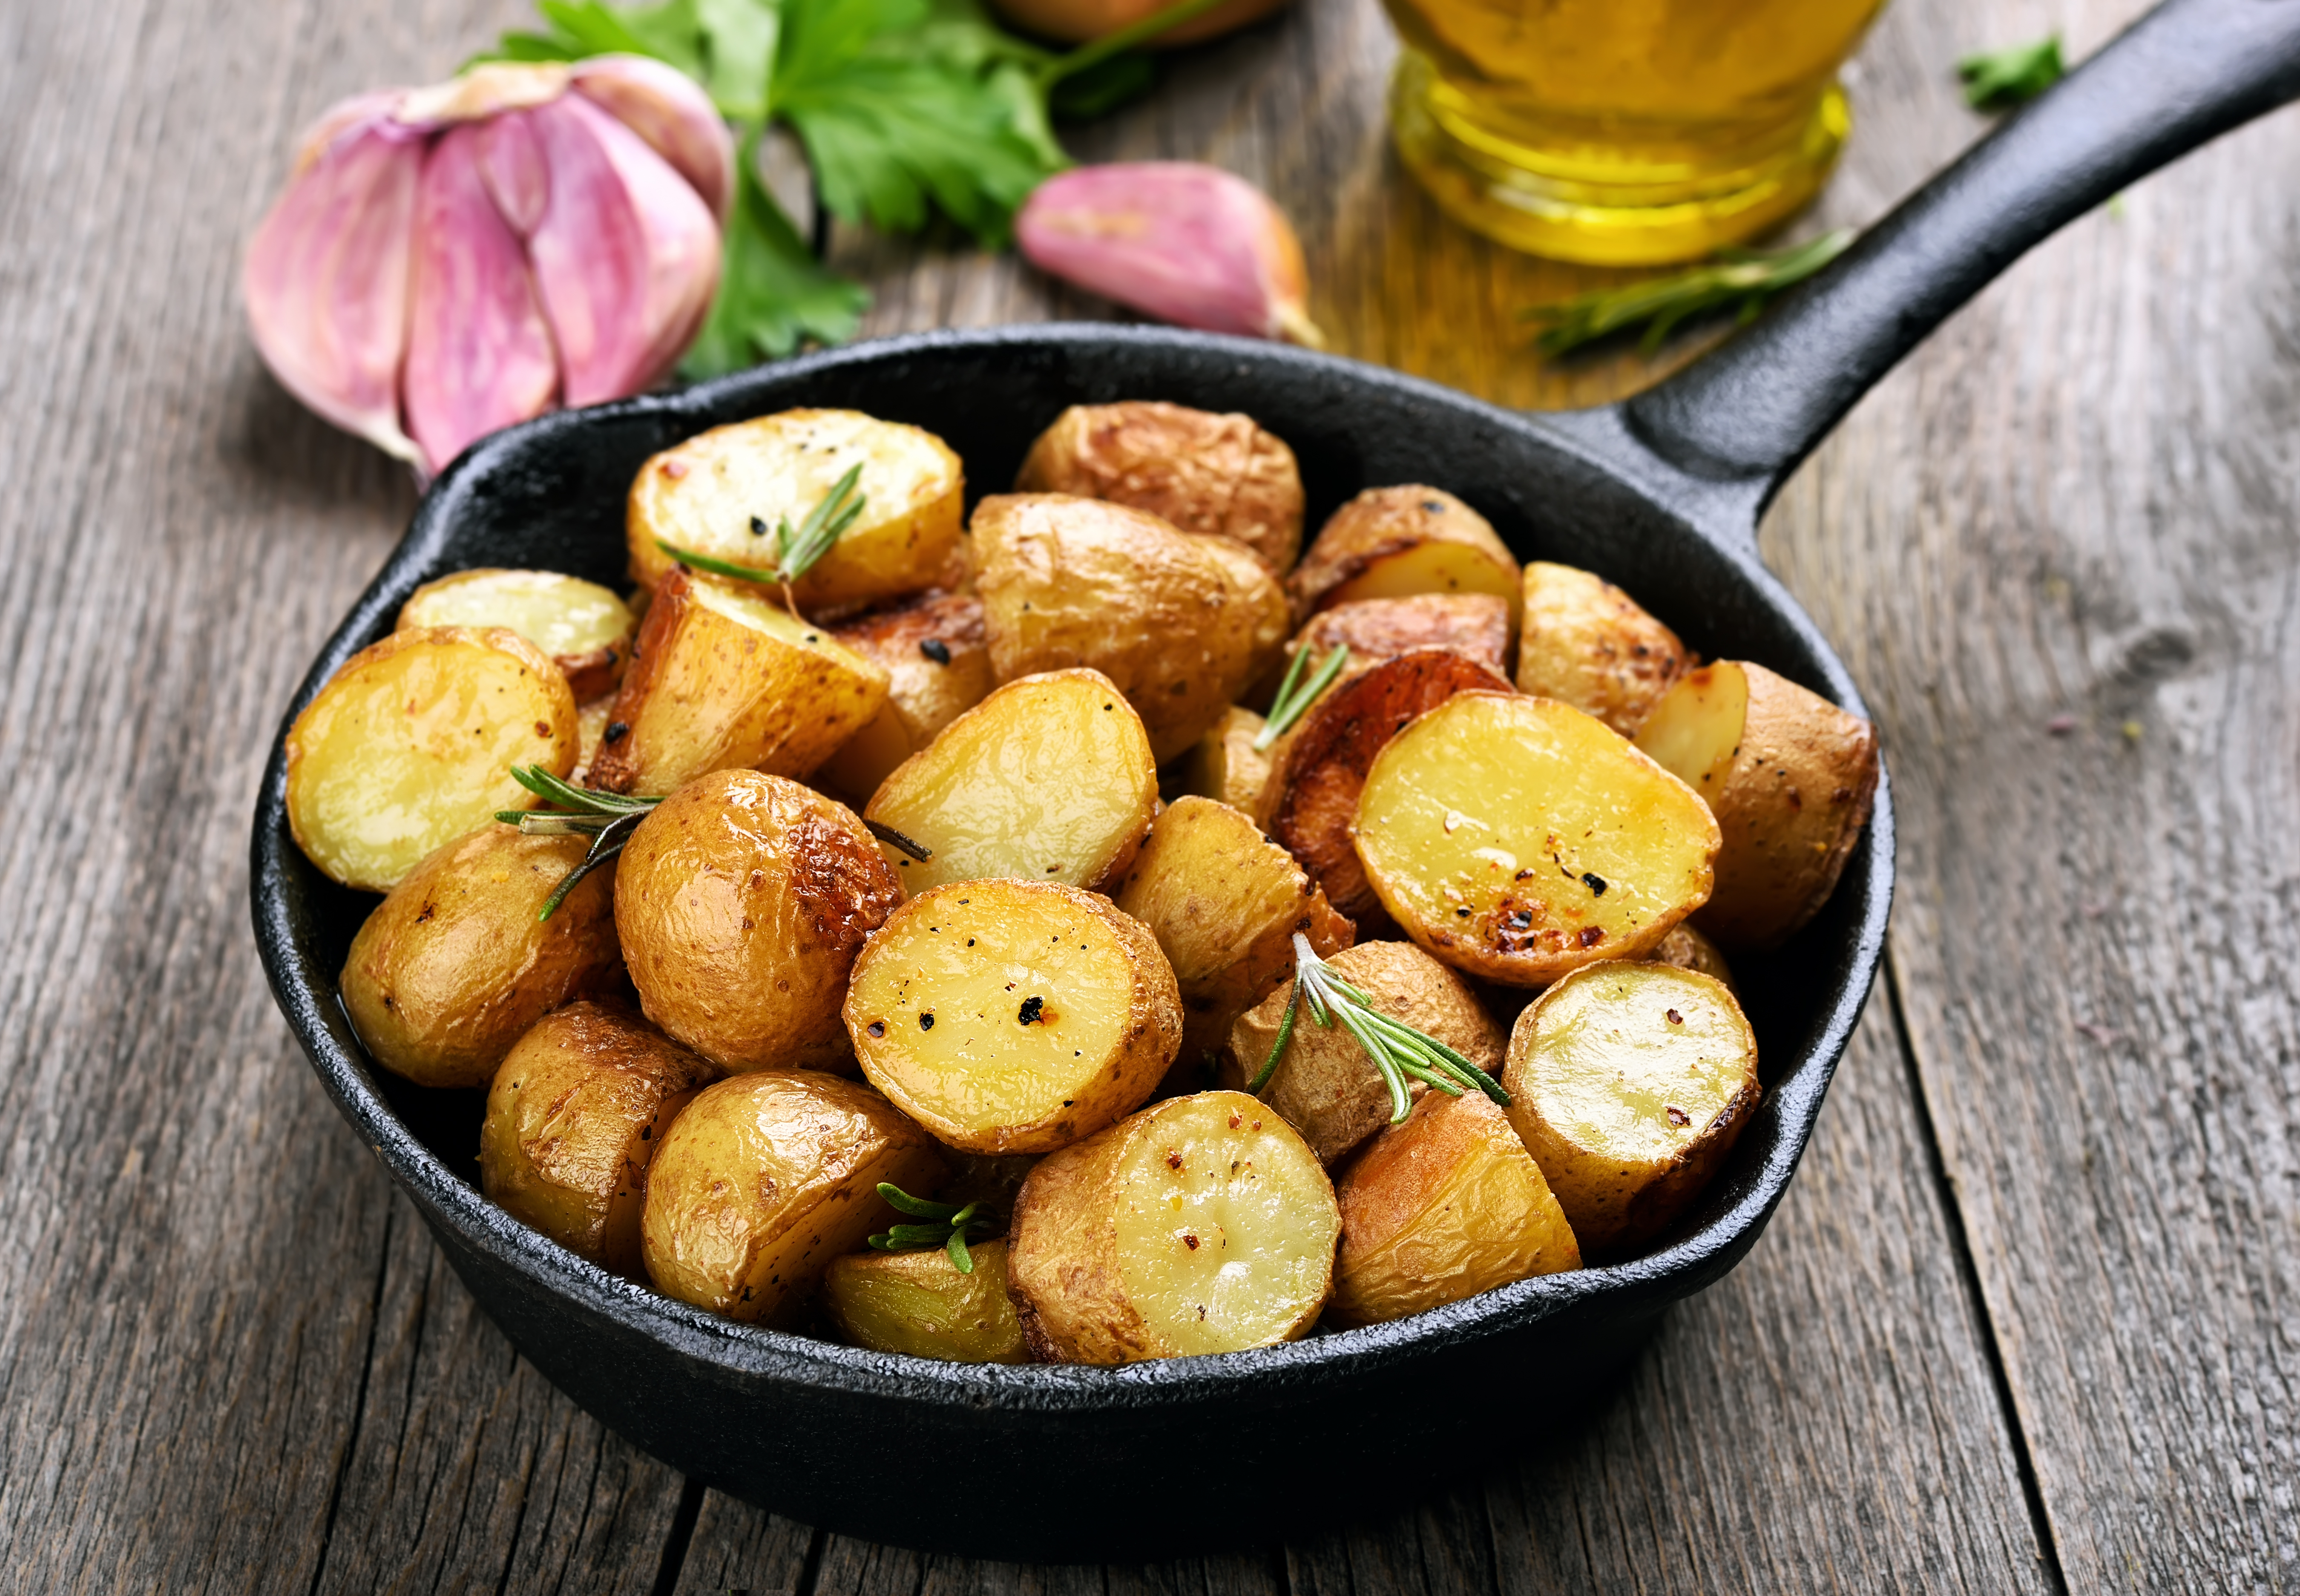 Does the Skin of a Potato Really Have All the Vitamins